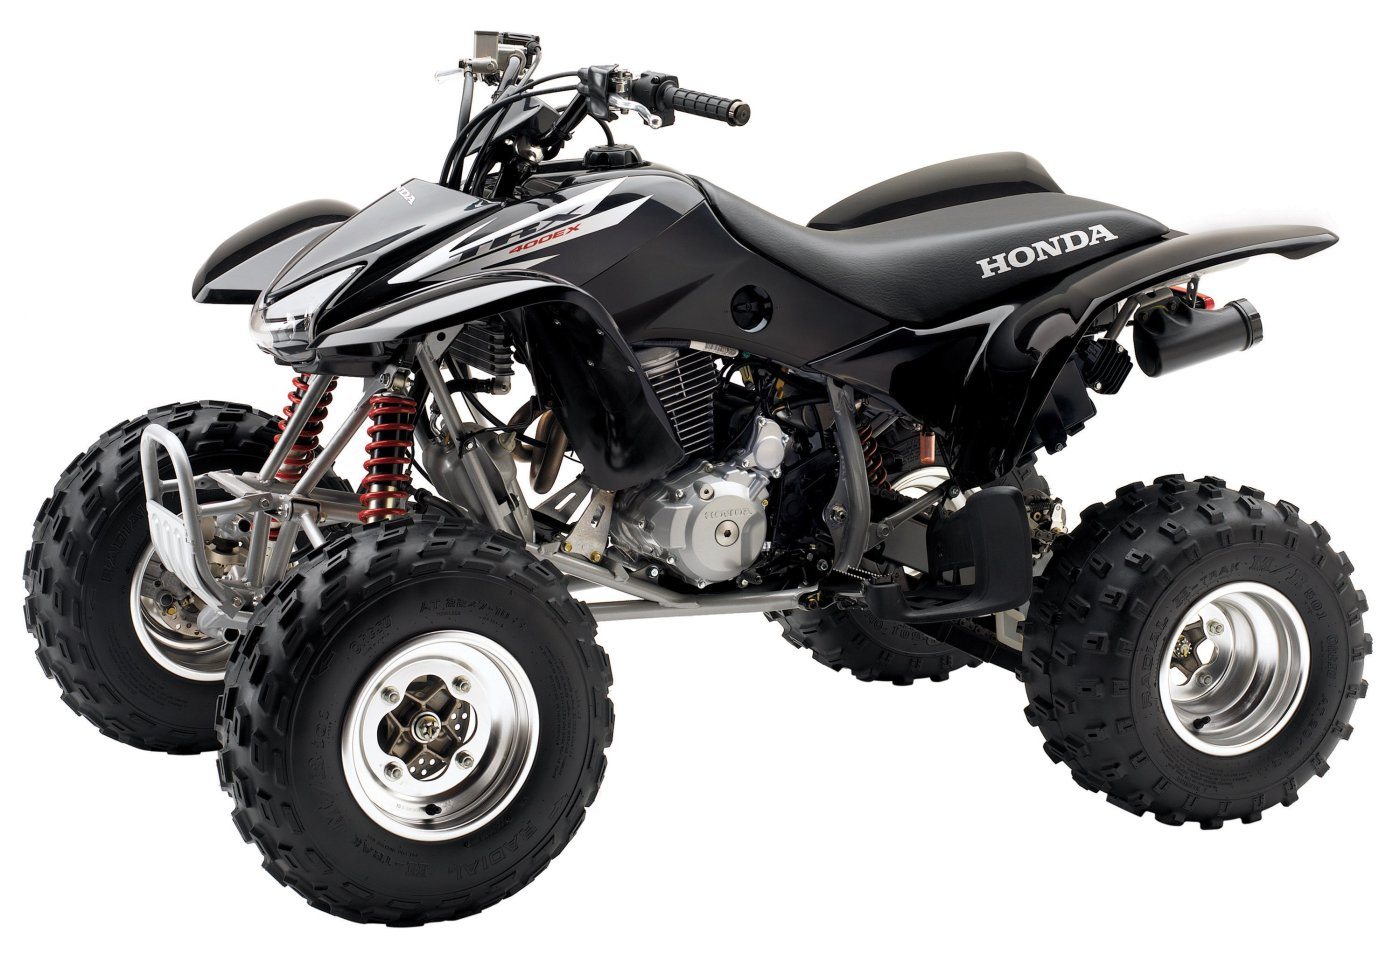 Honda TRX 400 Sportrax Rancher Foreman manual taller - mantenimiento - despiece